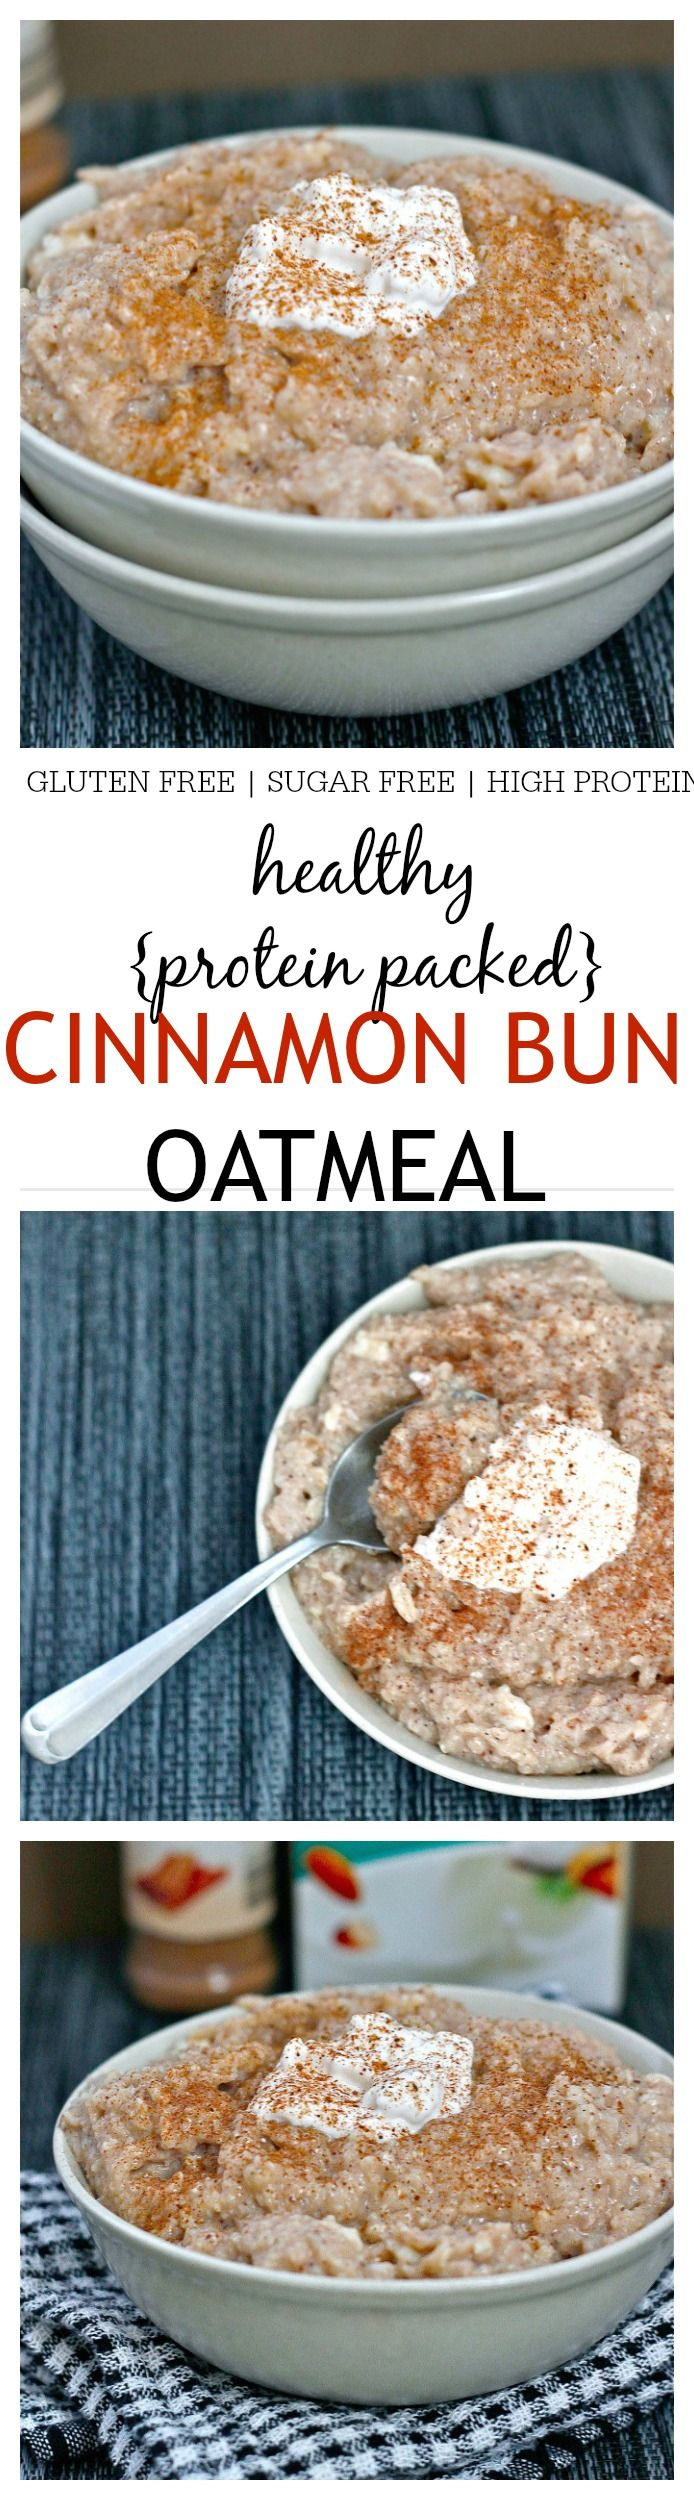 Healthy Cinnamon Bun Oatmeal- The taste and texture of a classic cinnamon bun in a healthy oatmeal form! {vegan, gluten free, sugar free}